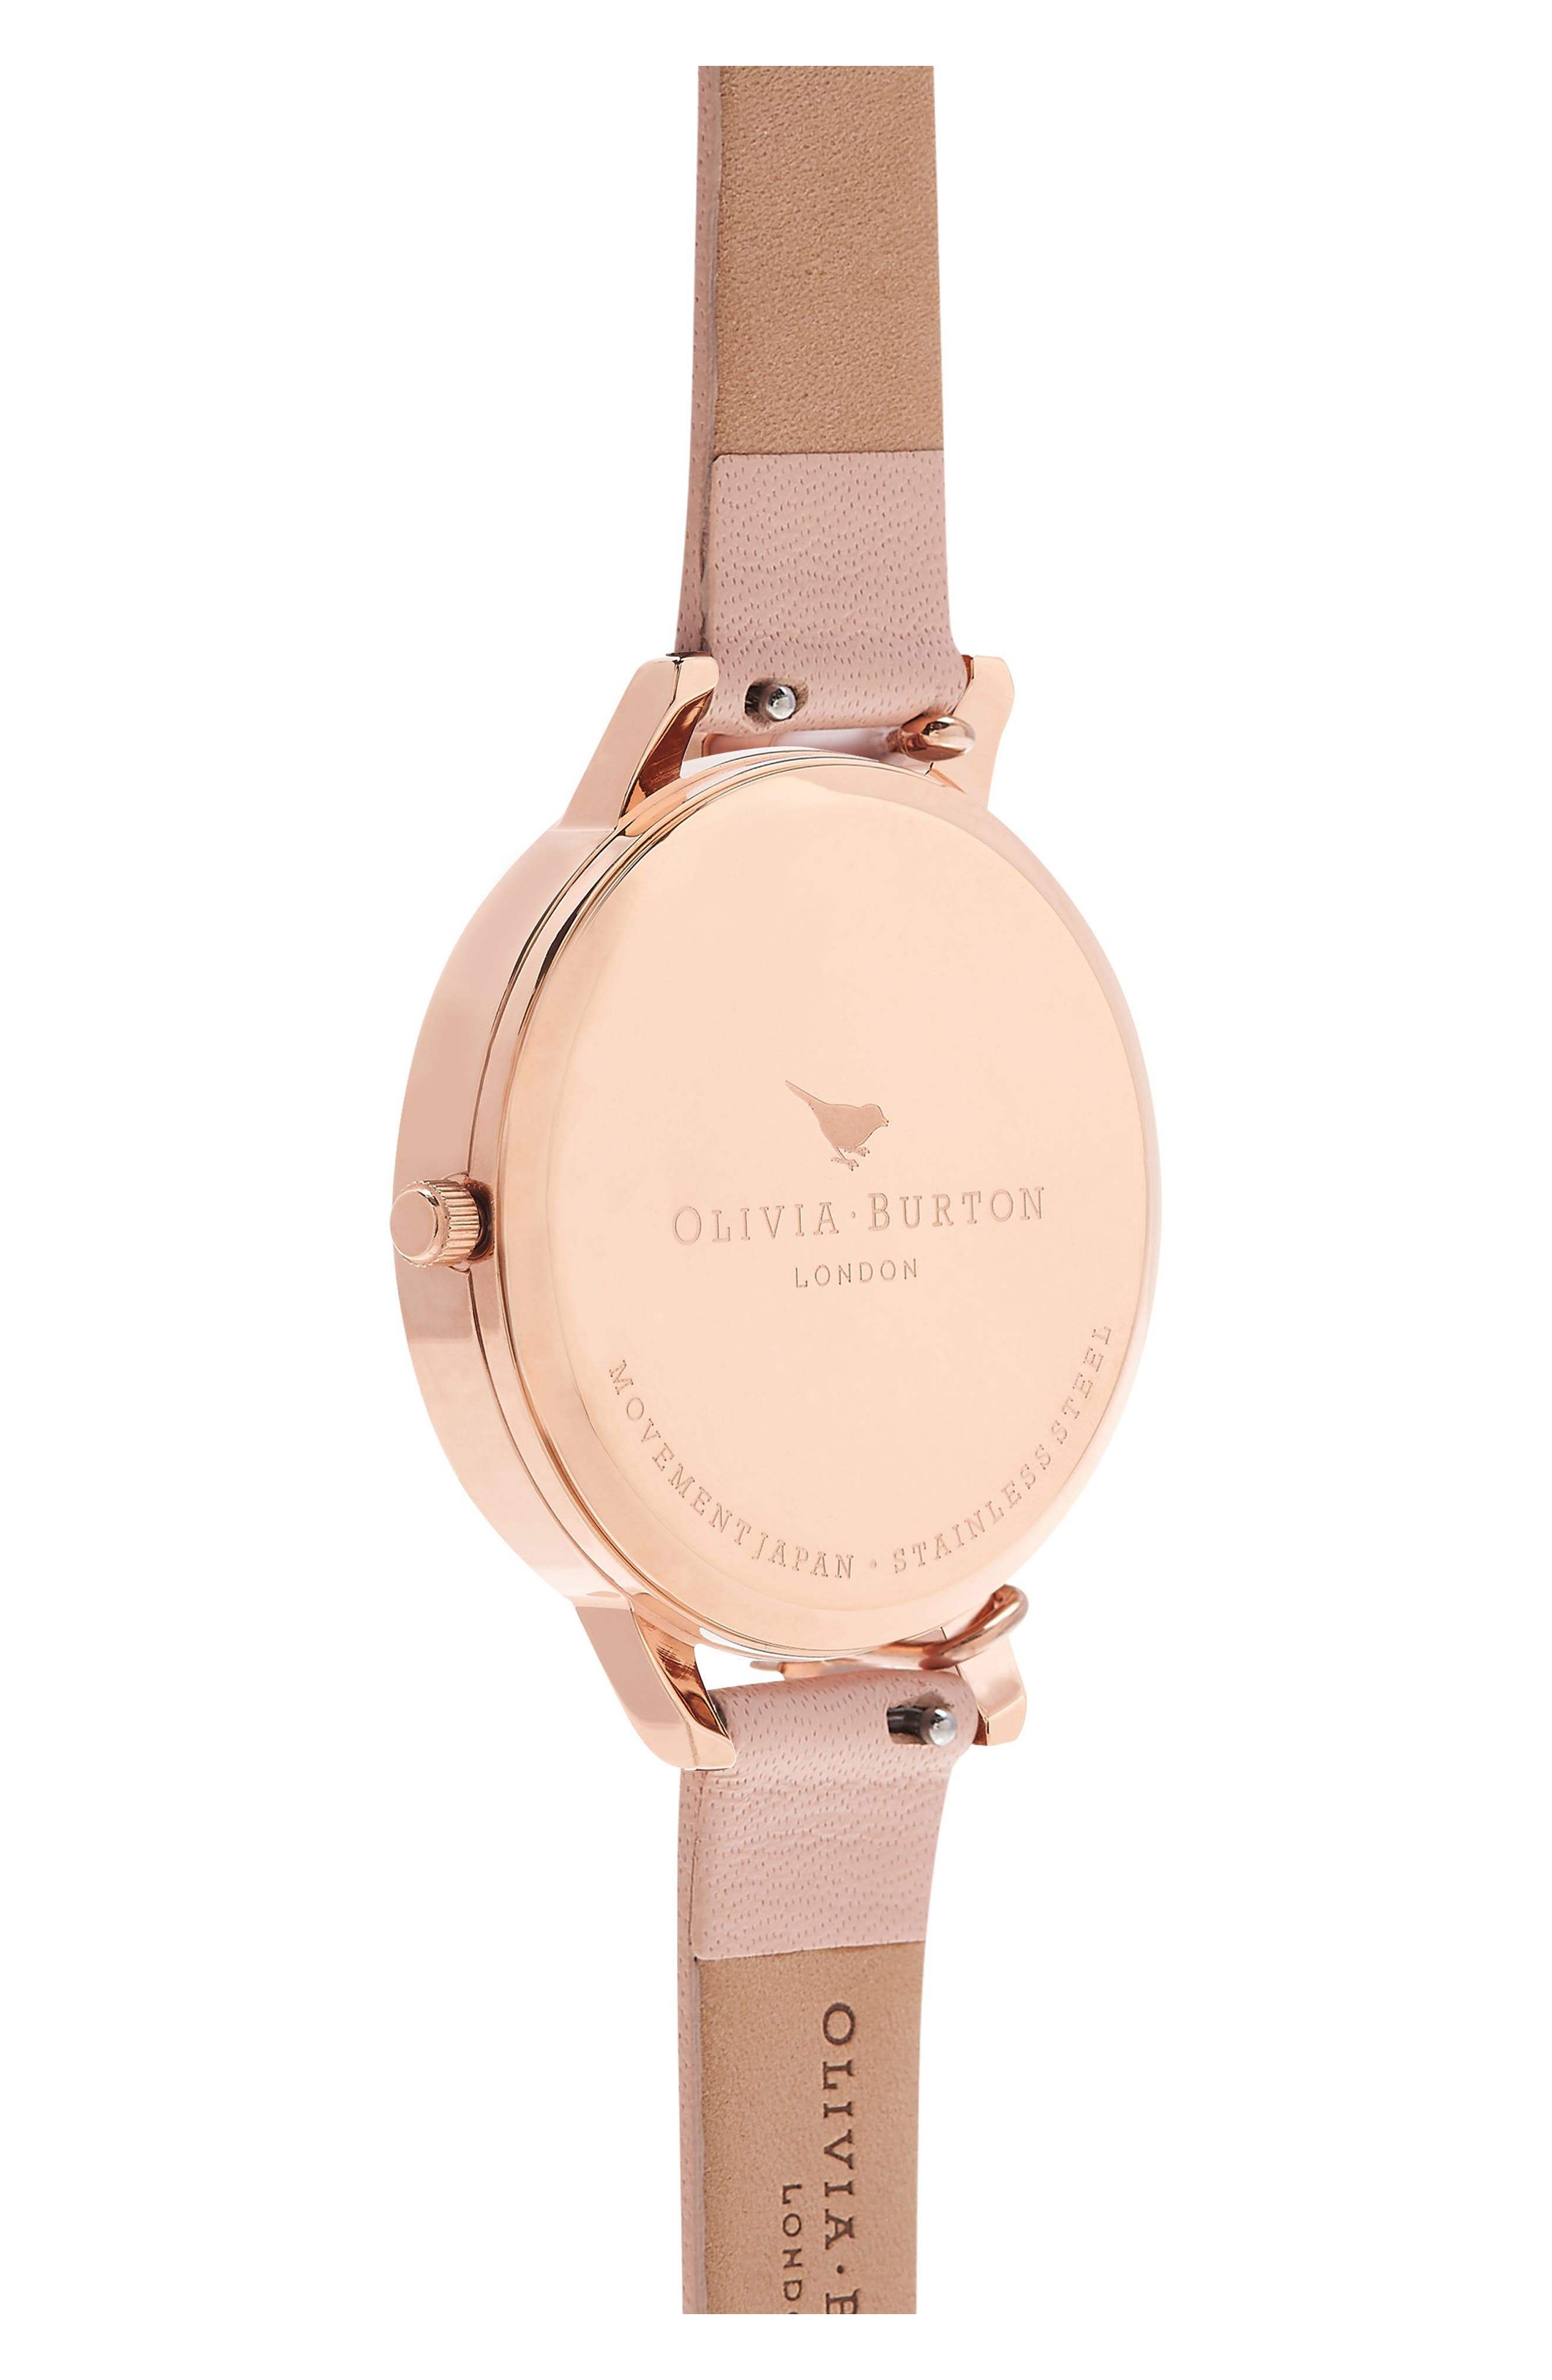 OLIVIA BURTON, Case Cuff Leather Strap Watch, 38mm, Alternate thumbnail 2, color, ROSE GOLD